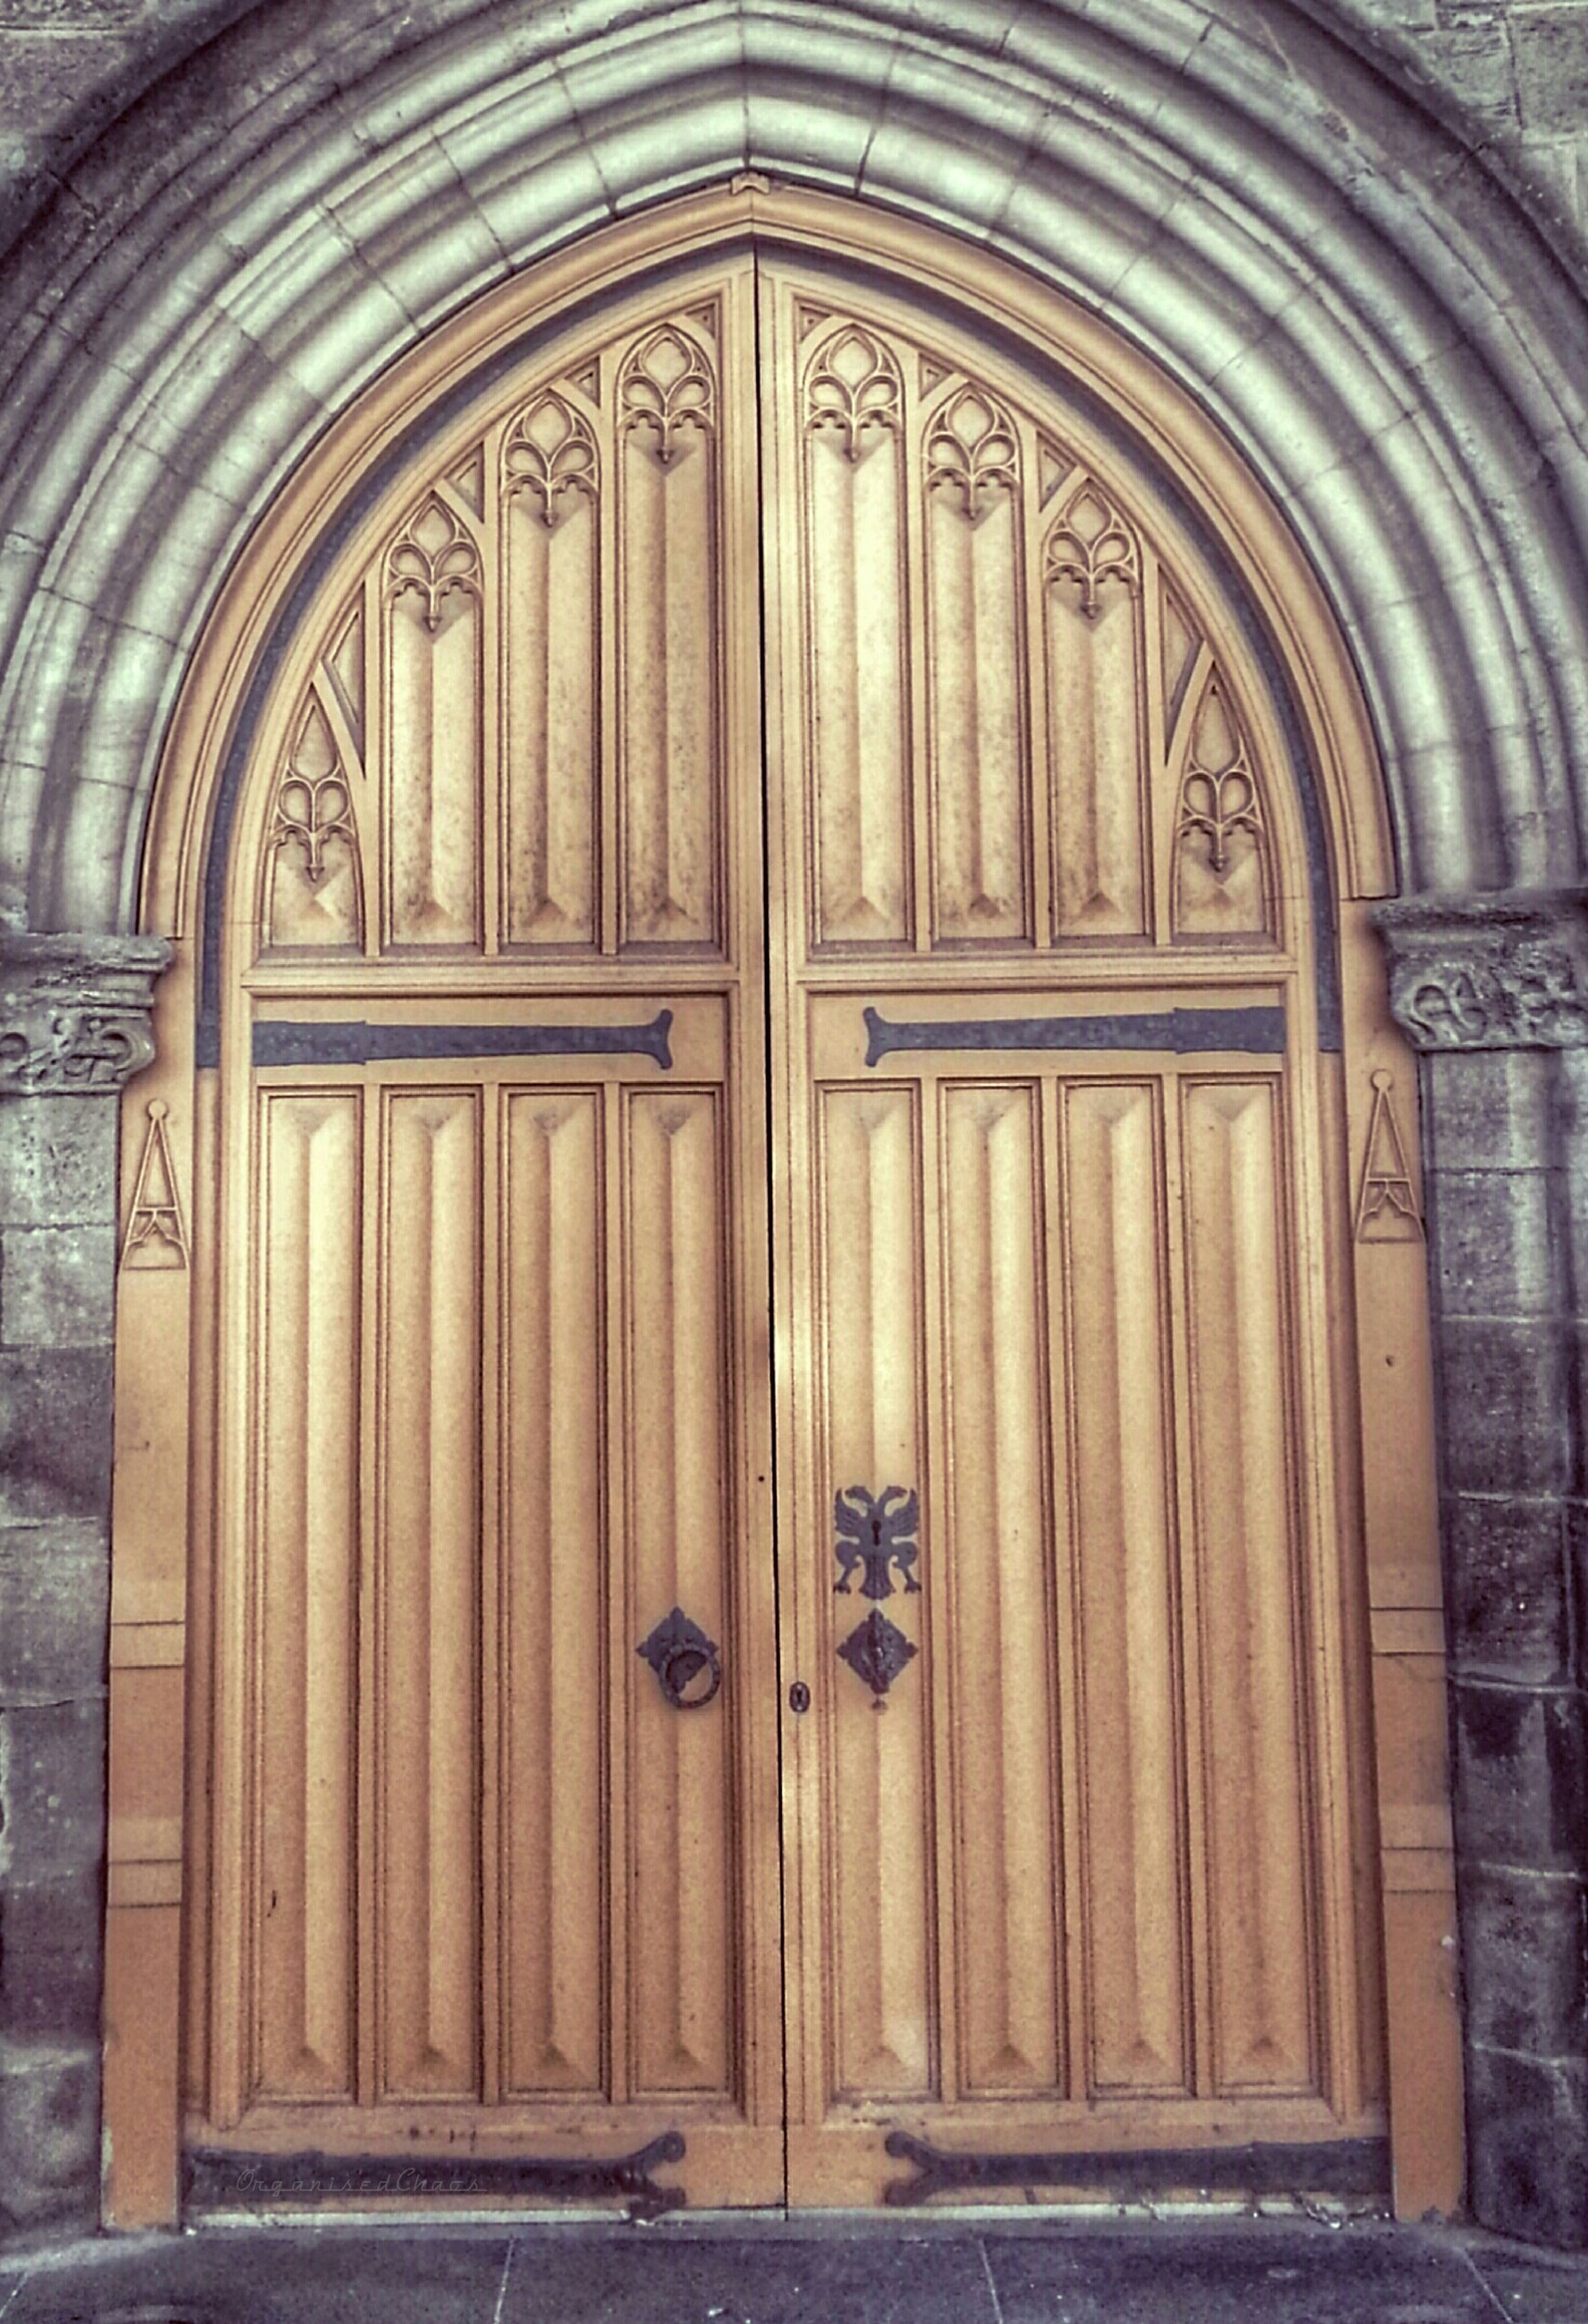 door, closed, wood - material, built structure, safety, protection, security, architecture, old, entrance, wooden, building exterior, metal, close-up, wall - building feature, pattern, closed door, day, no people, wood